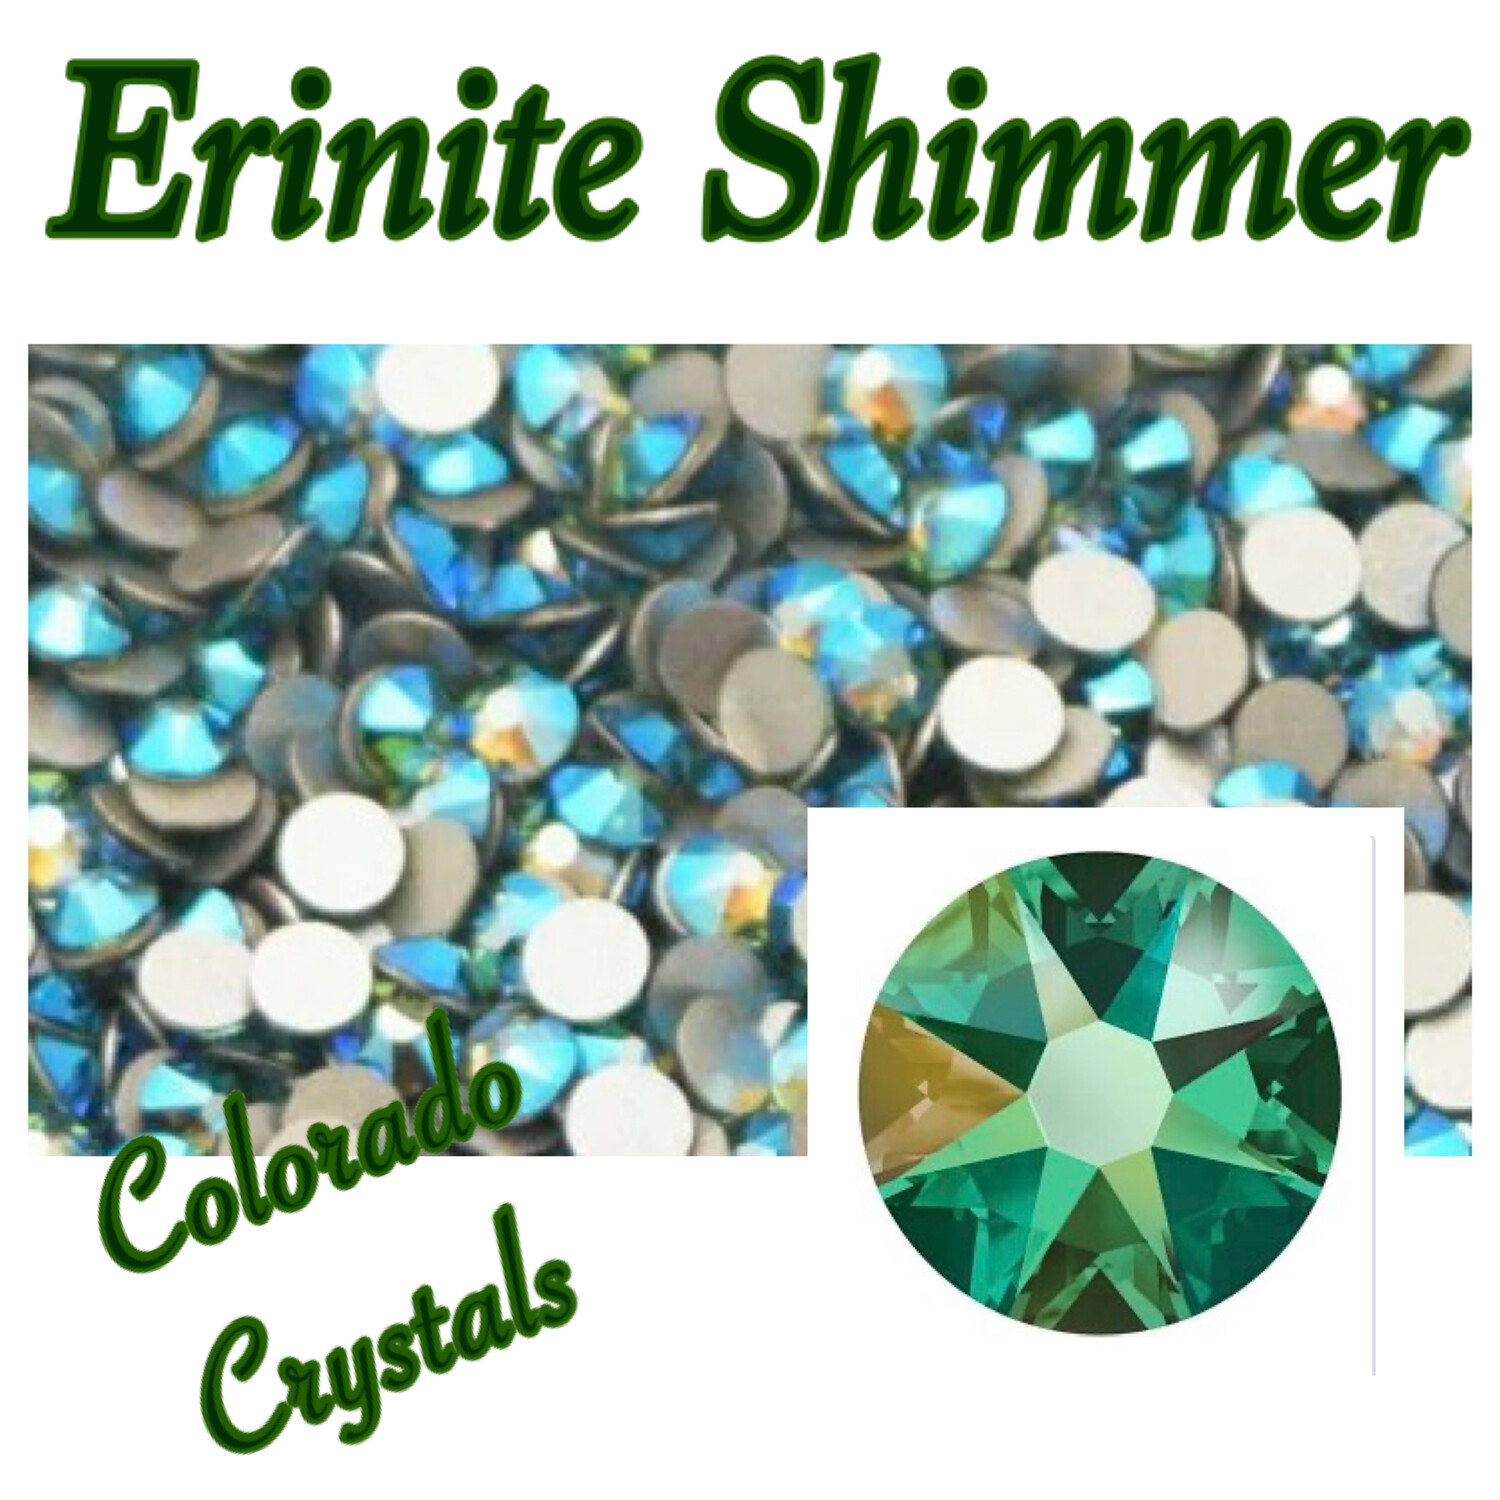 Erinite Shimmer 9ss 2058 Limited